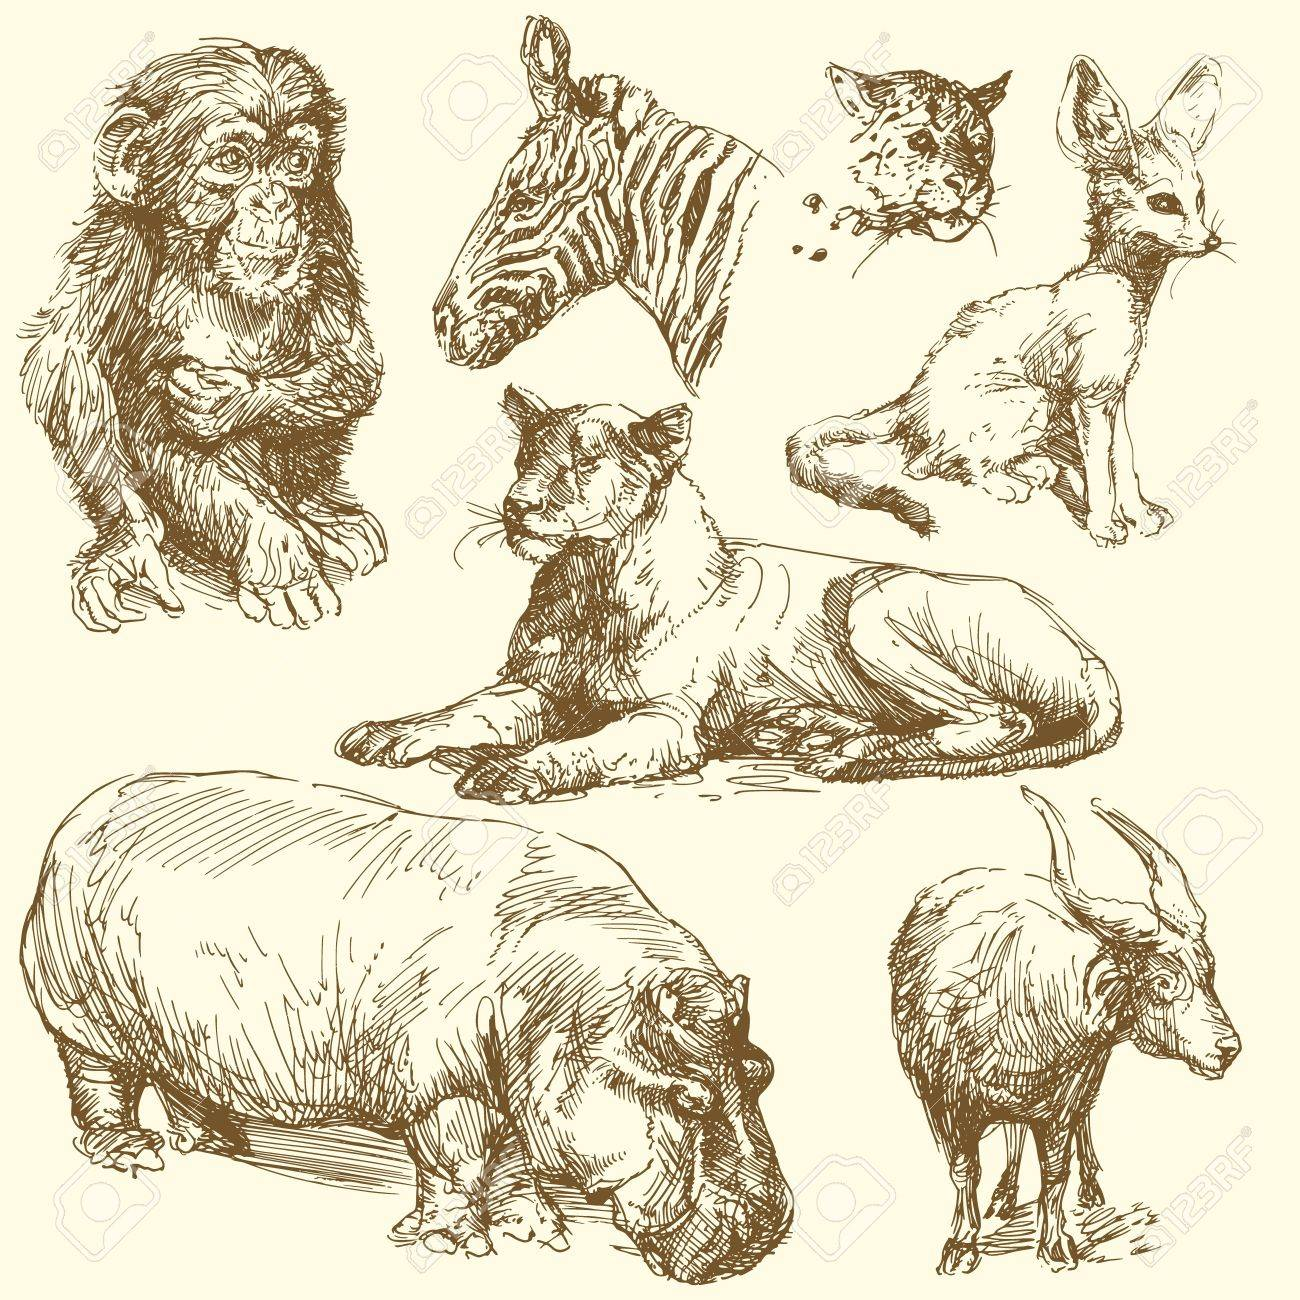 Uncategorized Drawn Pictures Of Animals wild animals hand drawn collection royalty free cliparts stock vector 14625393